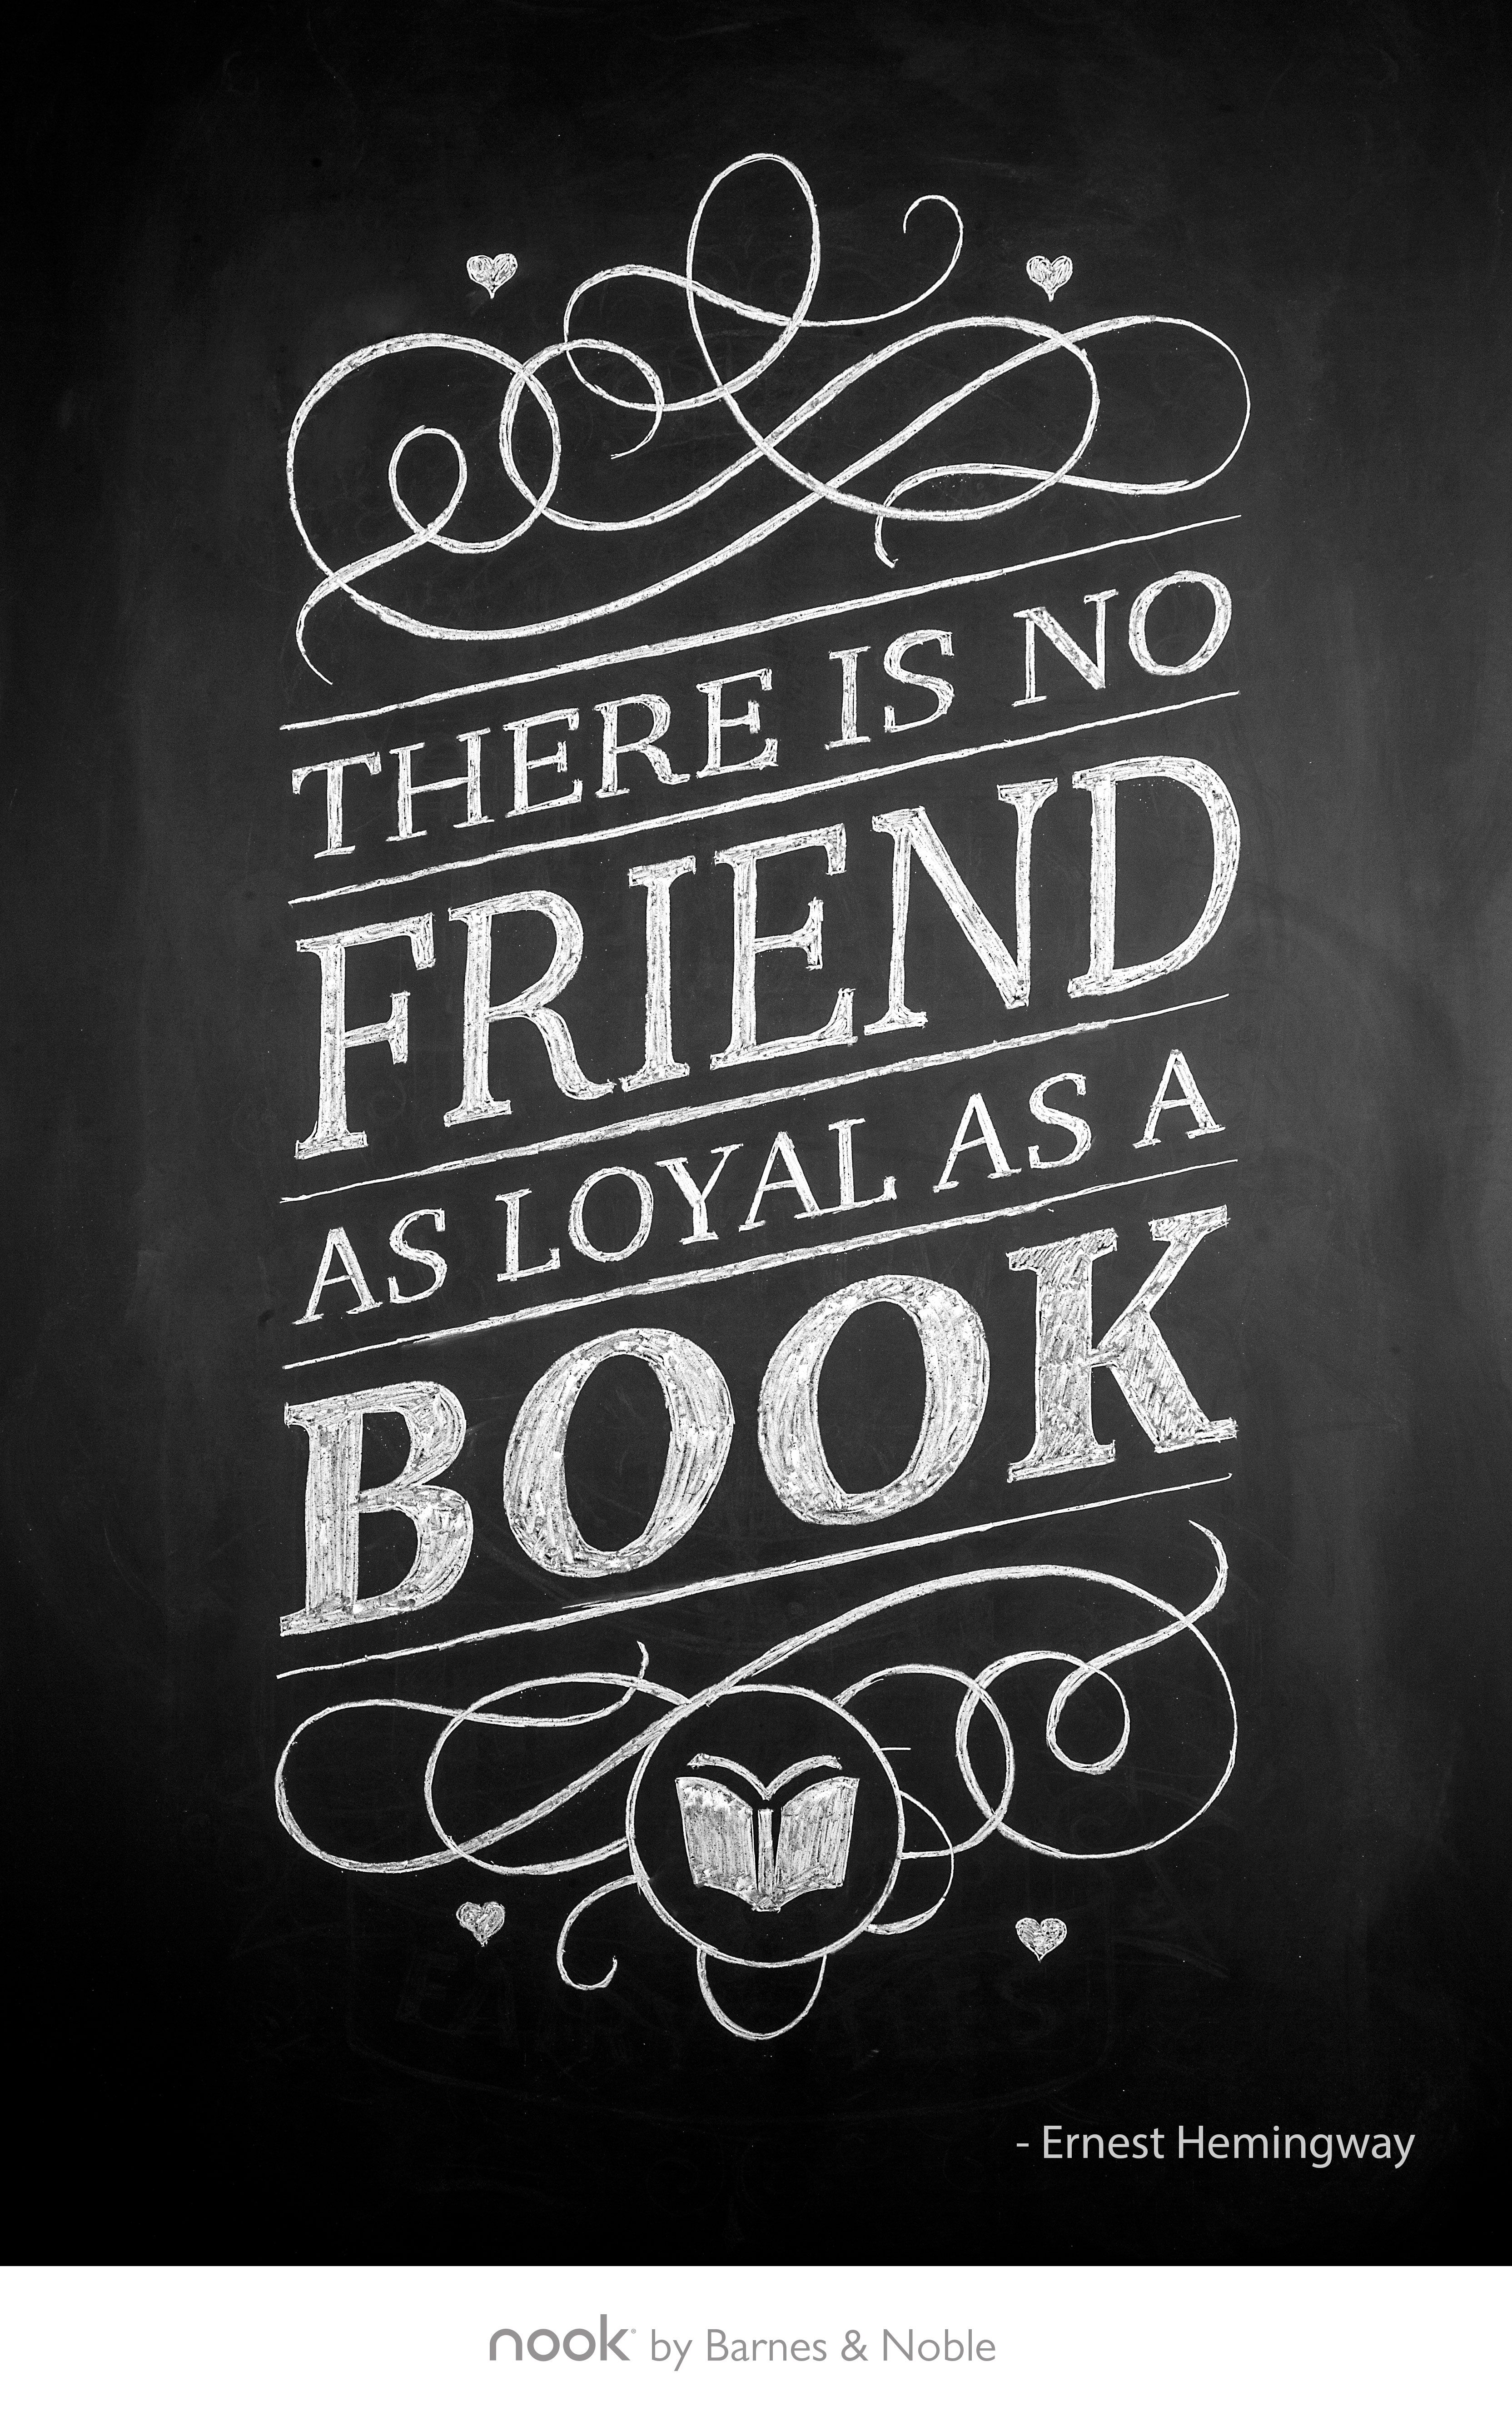 January 29th There Is No Friend As Loyal As A Book